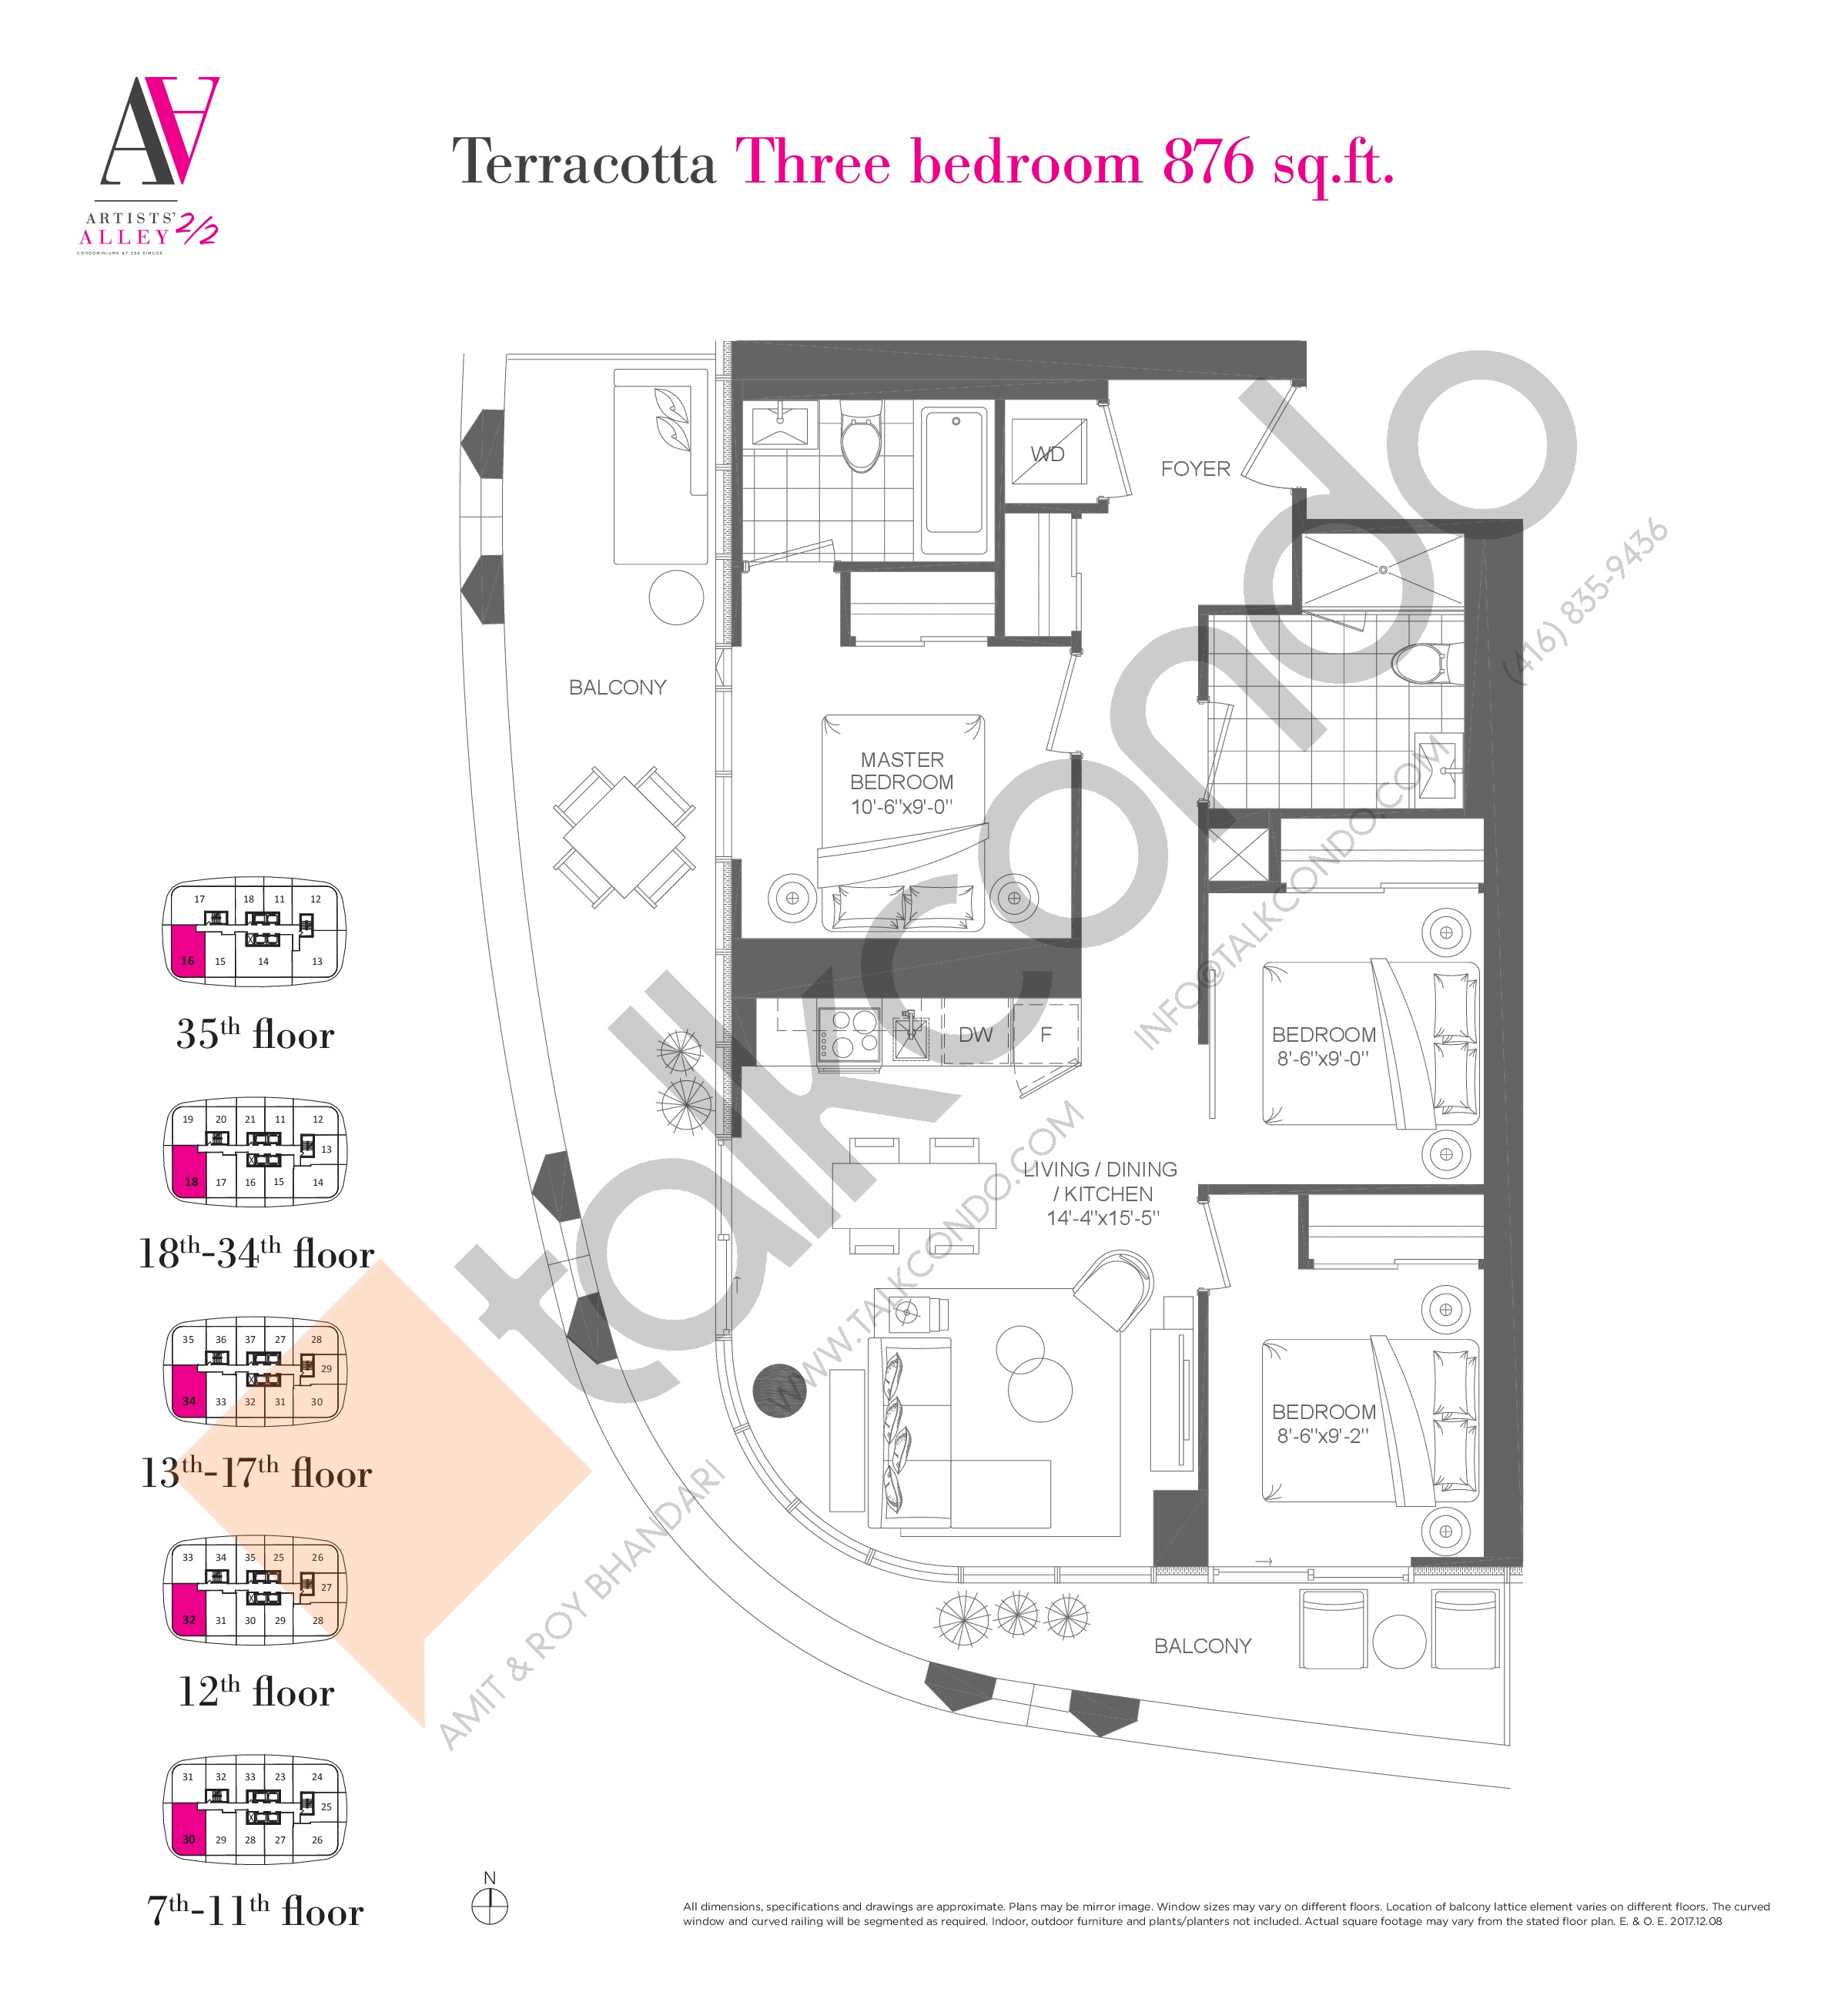 Terracotta Floor Plan at Artists' Alley 2 Condos - 876 sq.ft